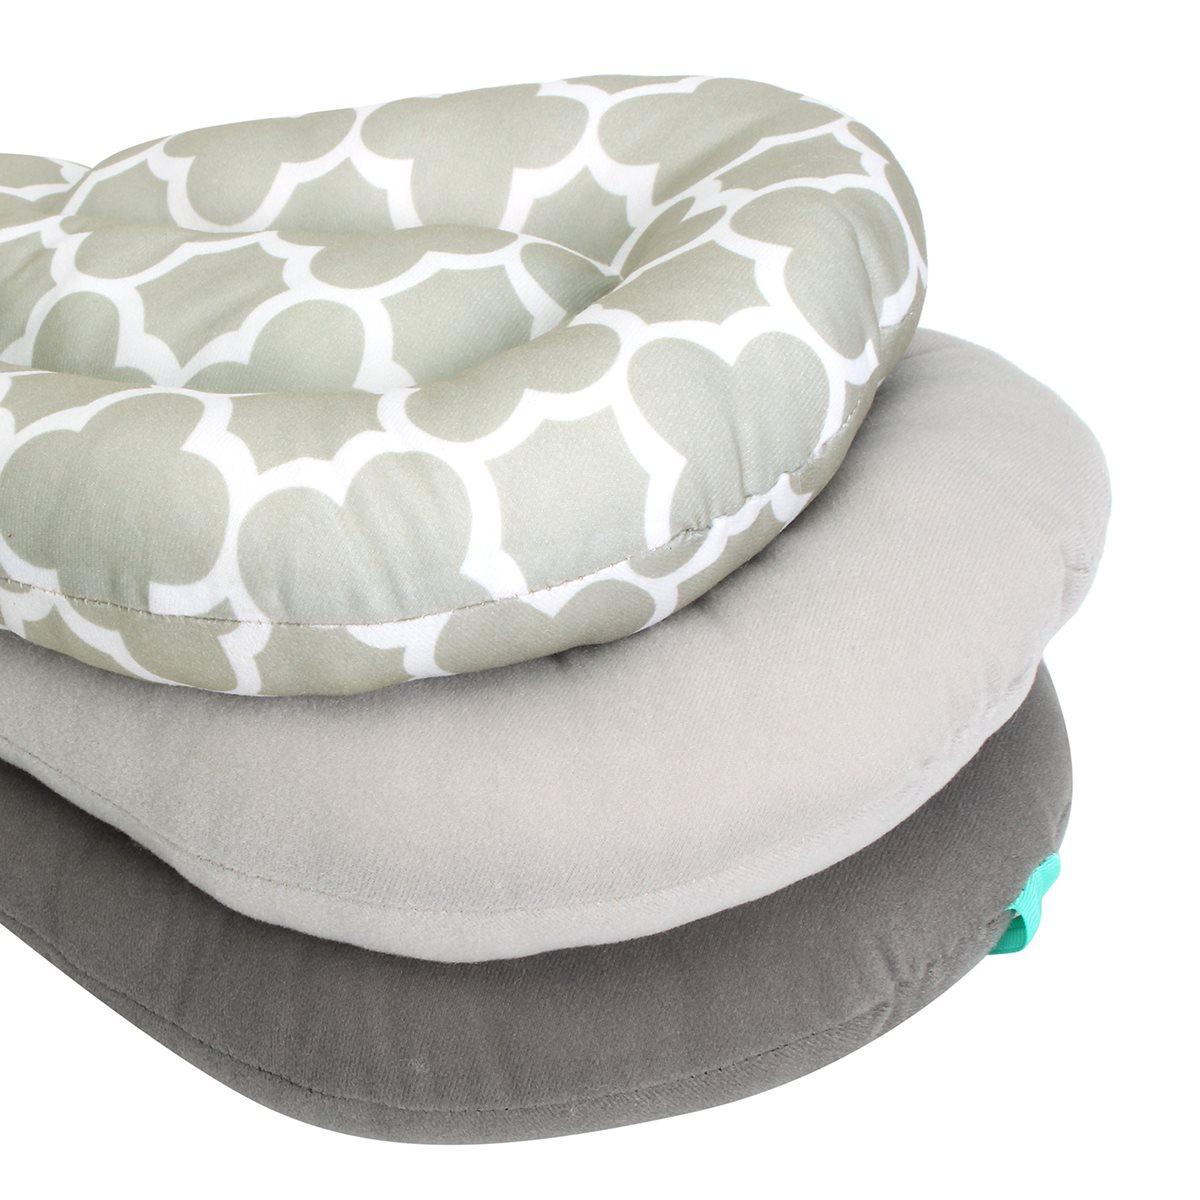 Aliexpress.com : Buy Adjustable Baby Pillow Elevate Maternity ...